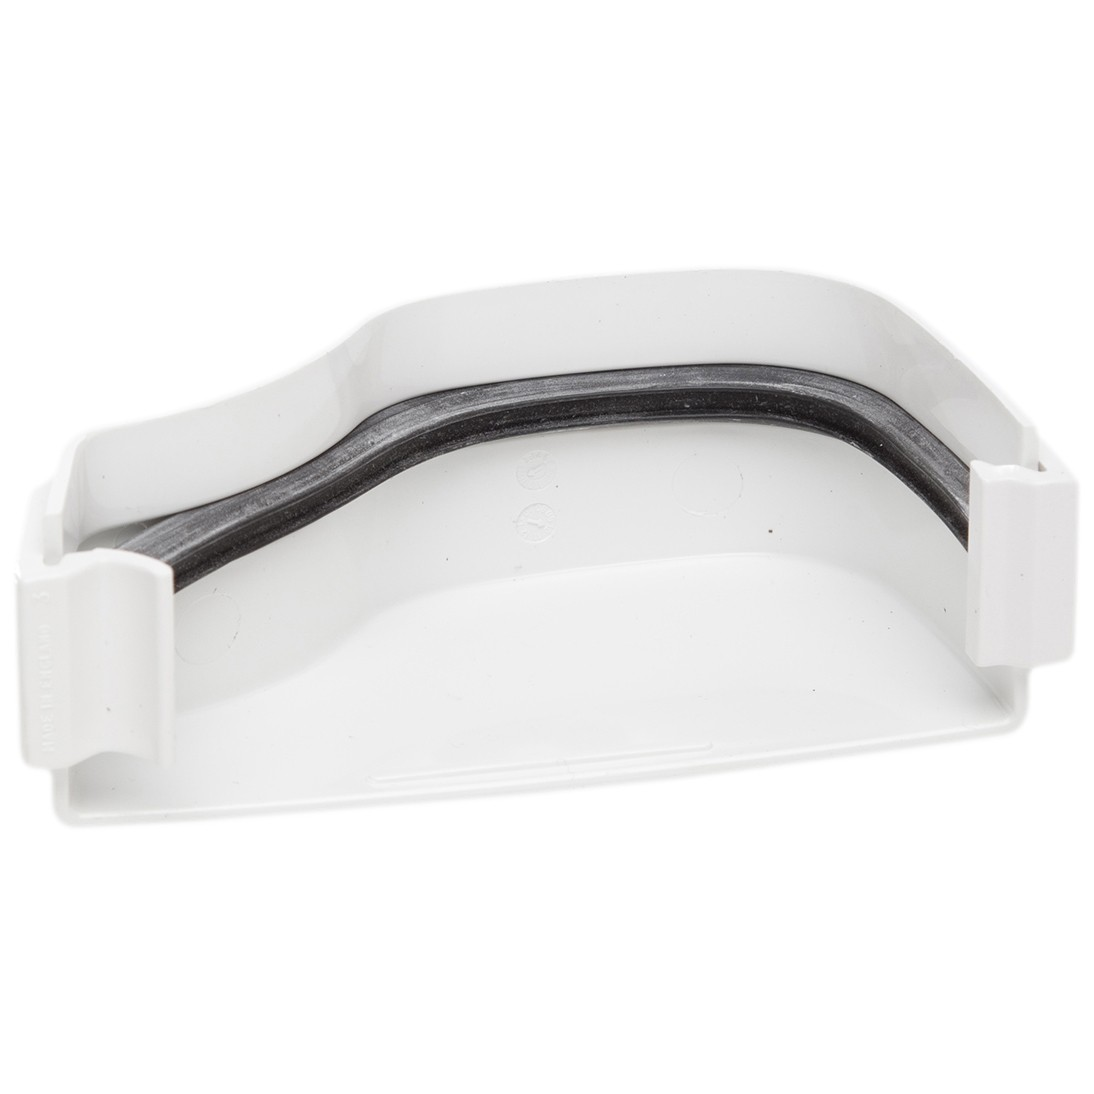 Polypipe 130mm Ogee Extra Capacity Gutter External Stop End (Right Hand) - White